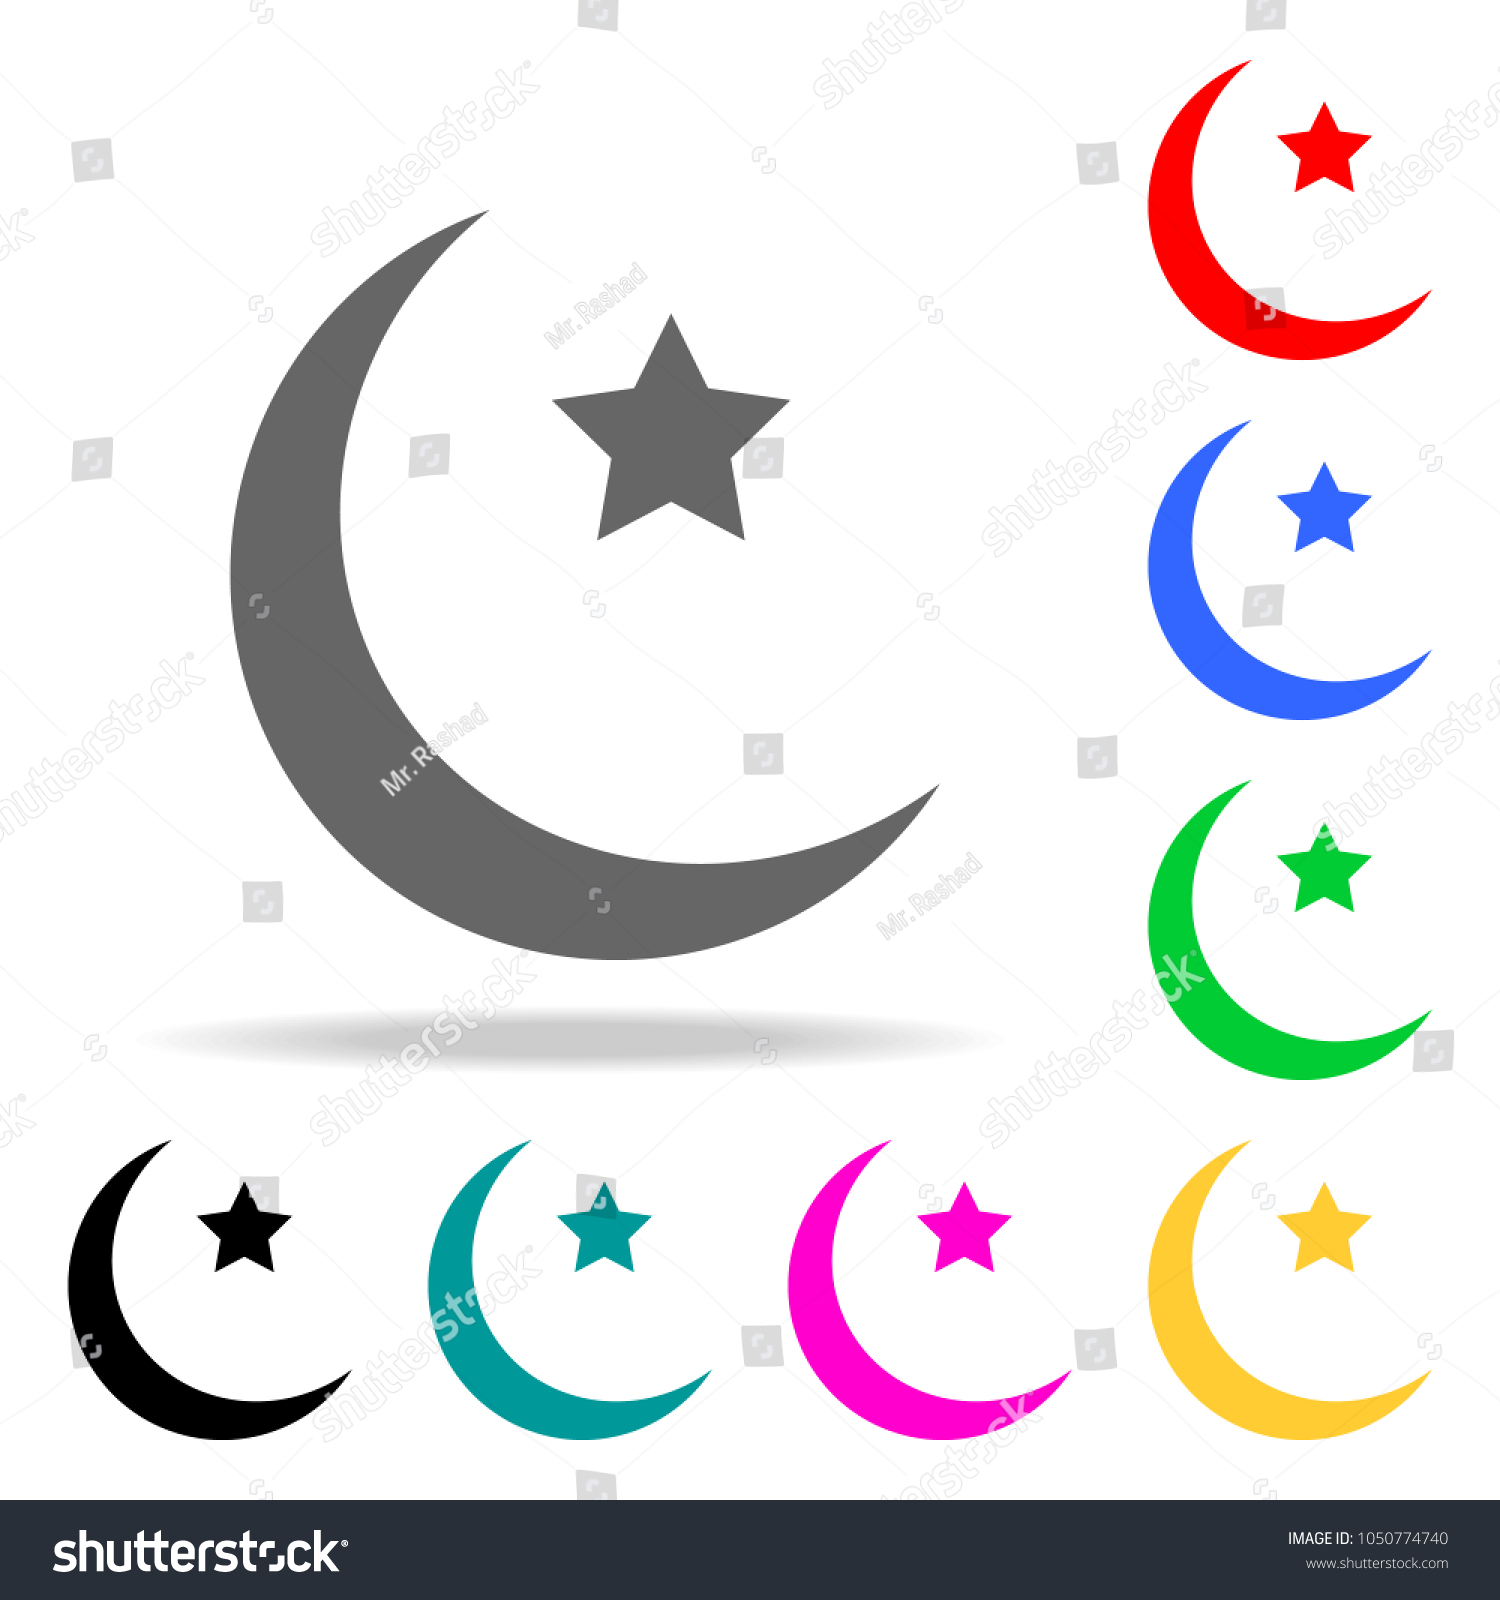 Moon And Star Icon Elements Of Religion Multi Colored Icons Premium Quality Graphic Design